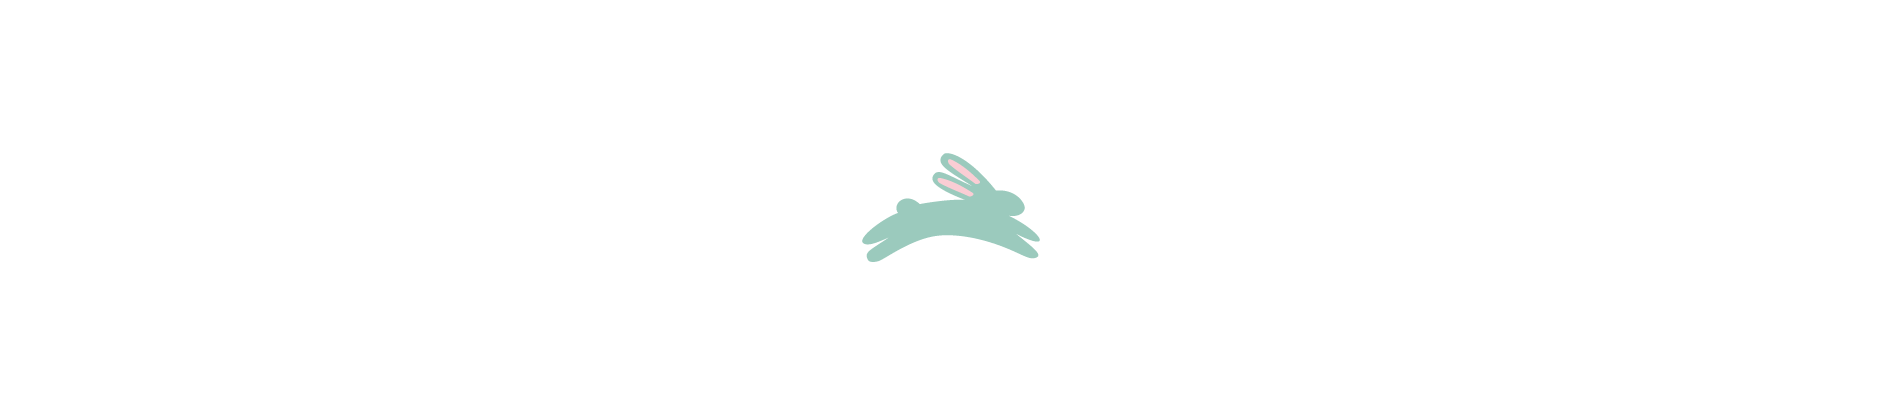 banner-lapin.png